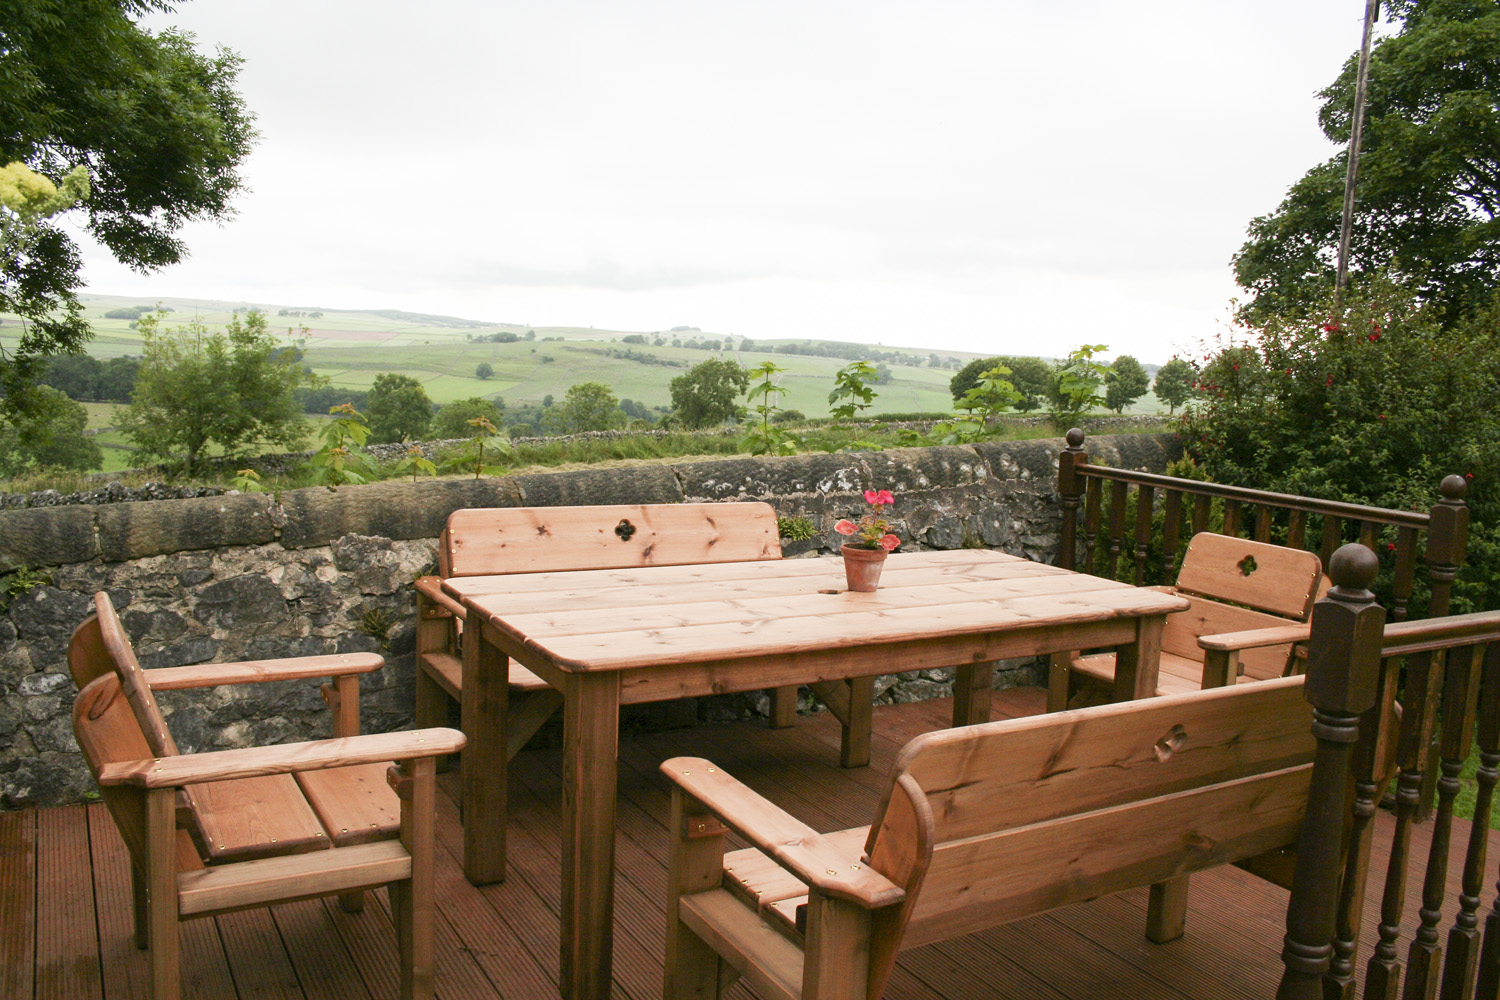 Extensive rural views can be enjoyed from the outdoor seating area.